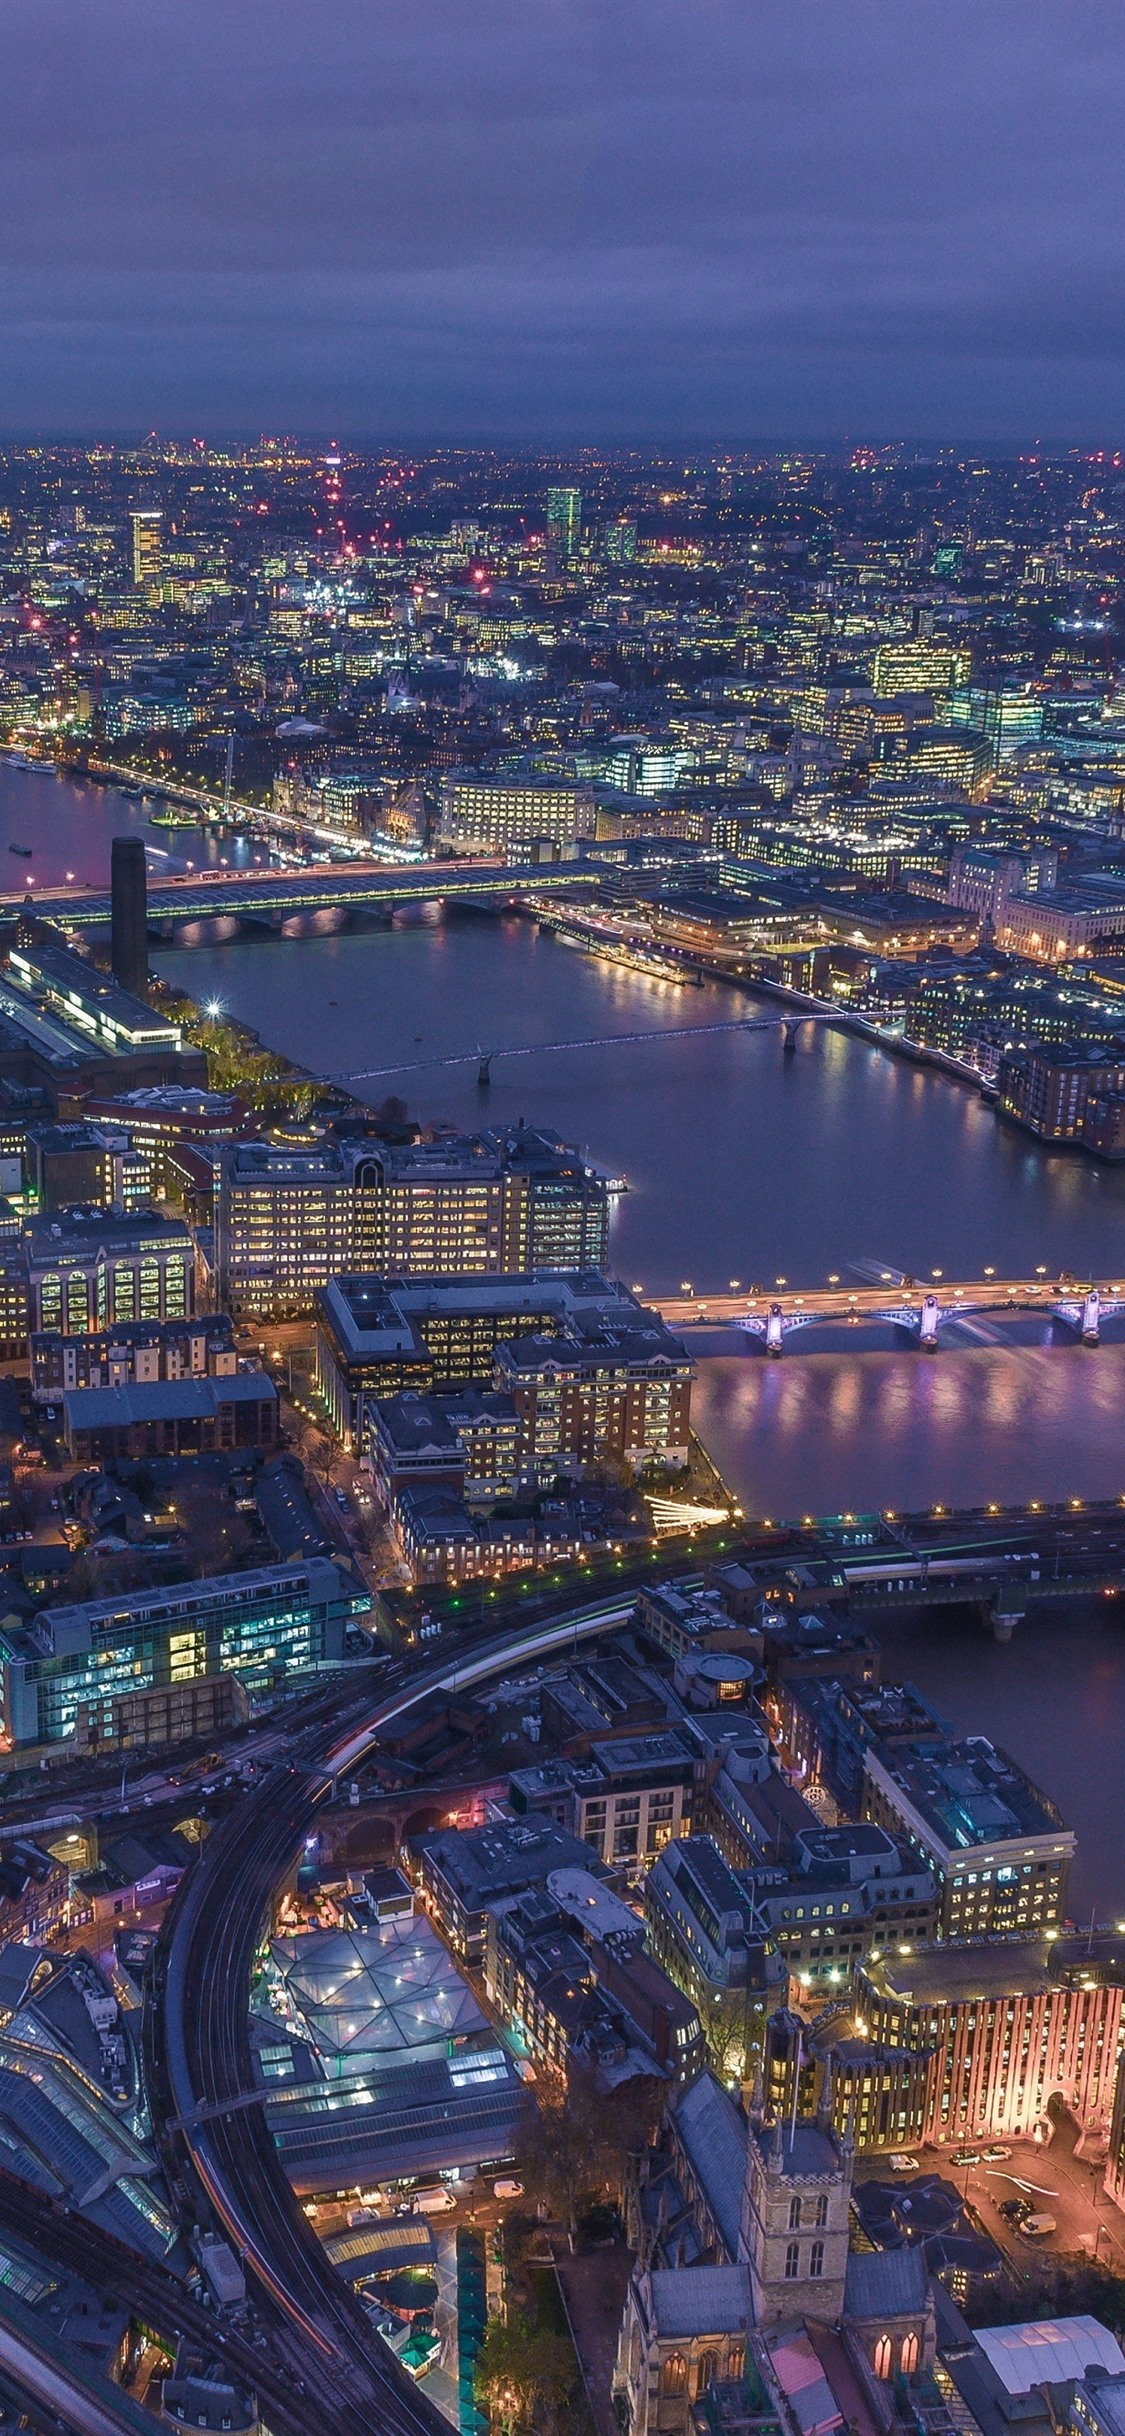 London Night City 248813 Hd Wallpaper Backgrounds Download